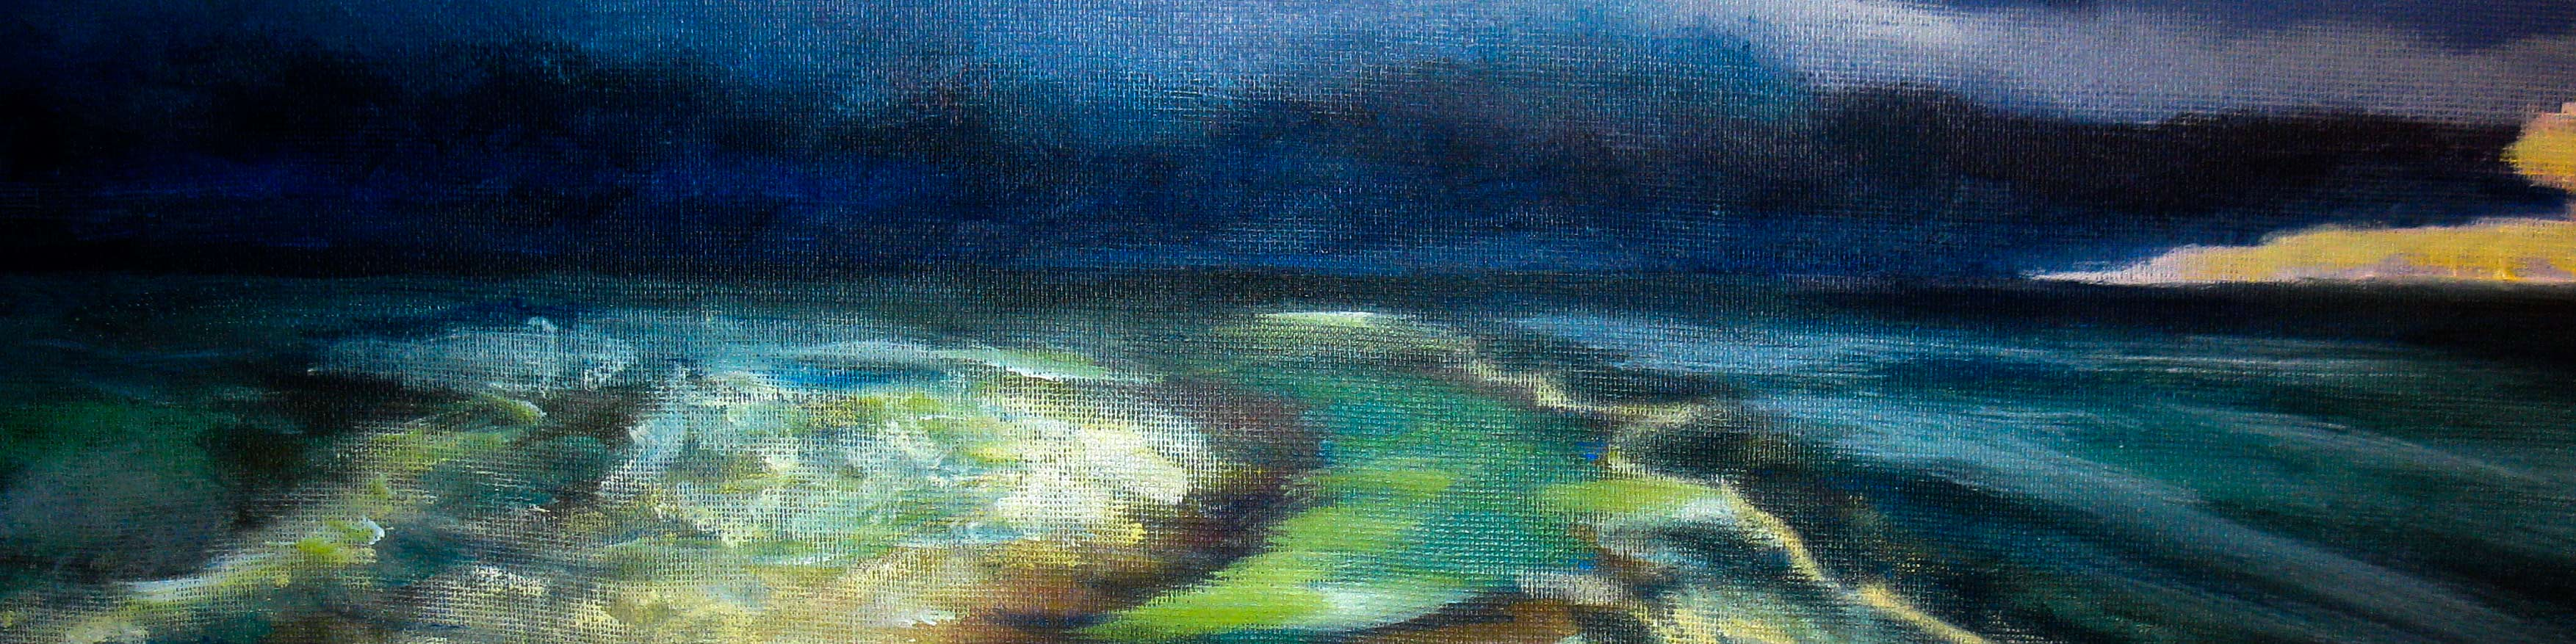 Ocean Painting by Helen Jefferson Lenskyj